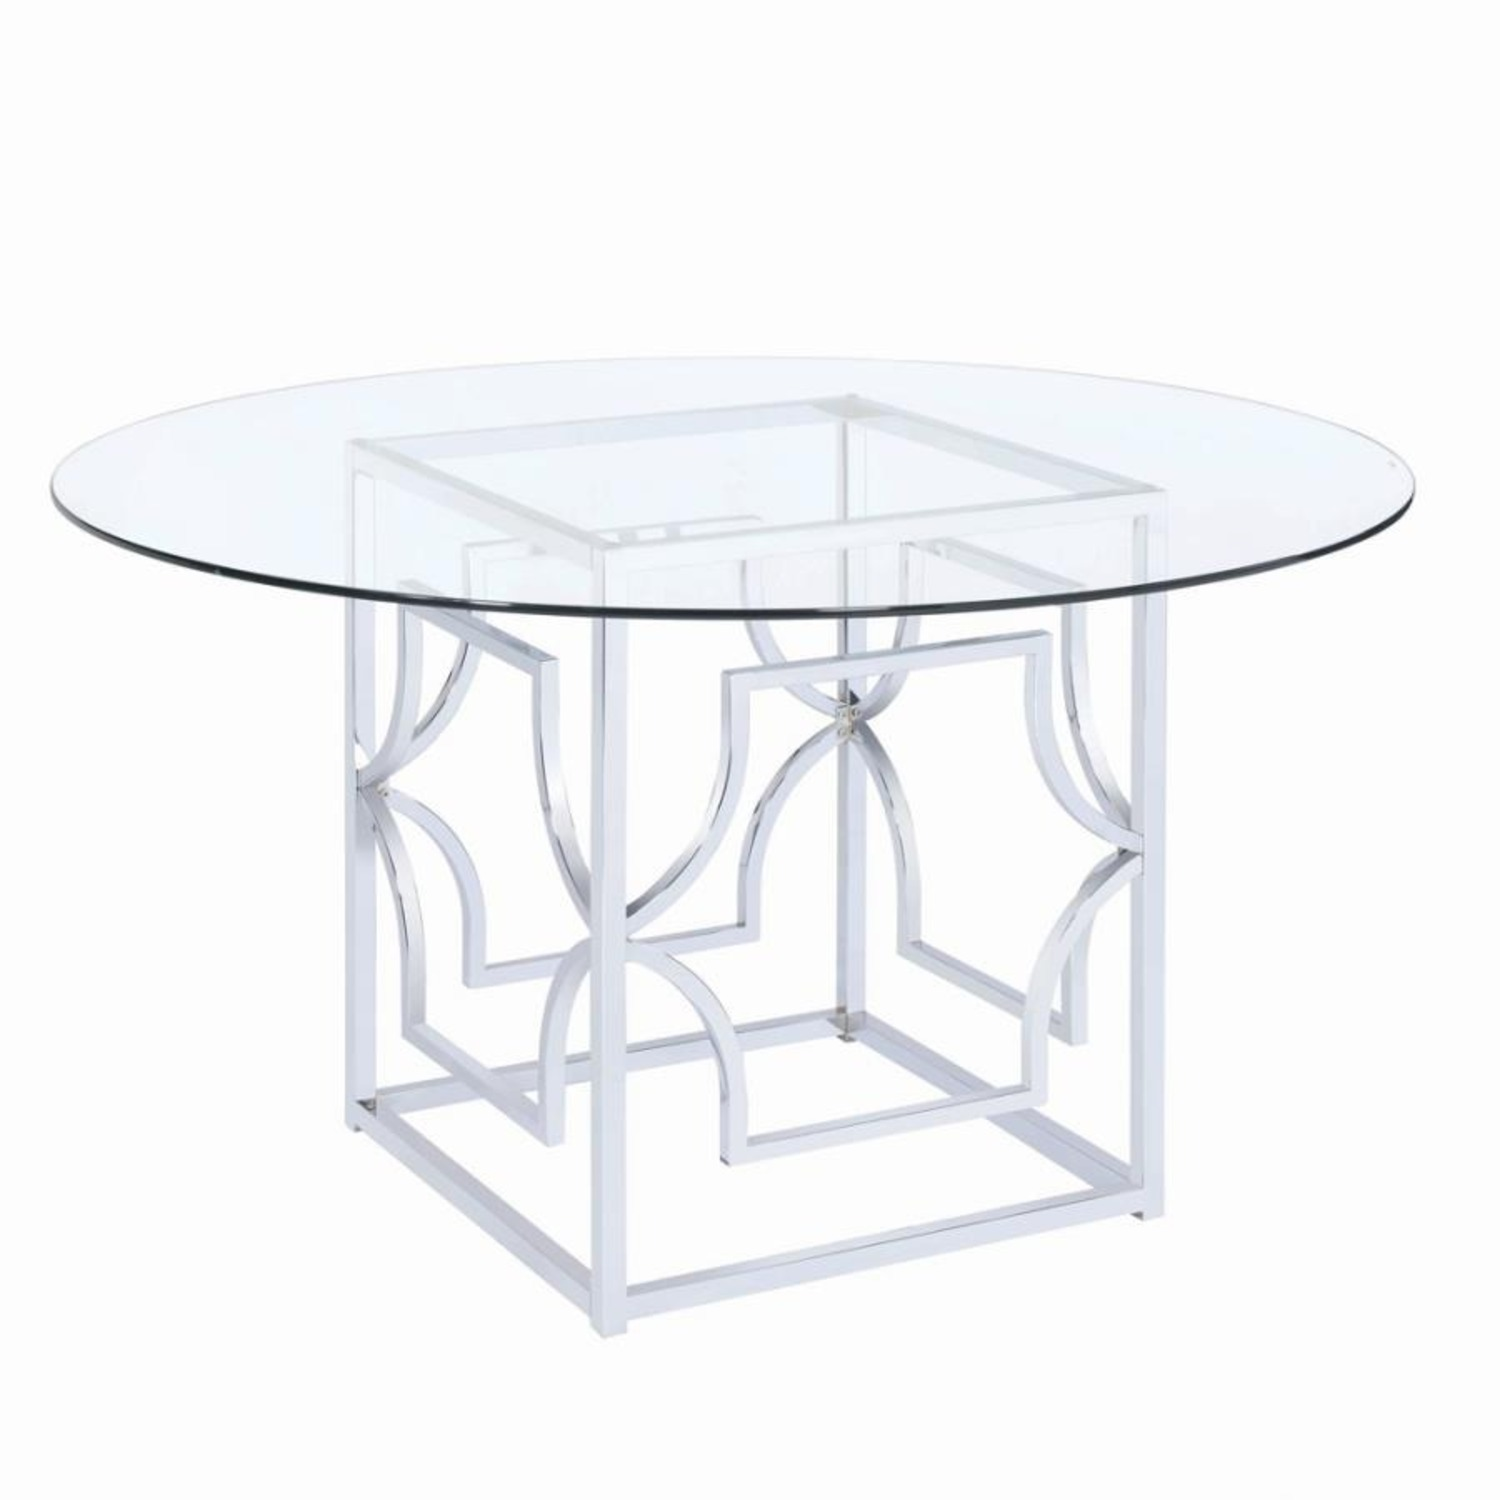 Dining Table In Chrome Patterned Base - image-1